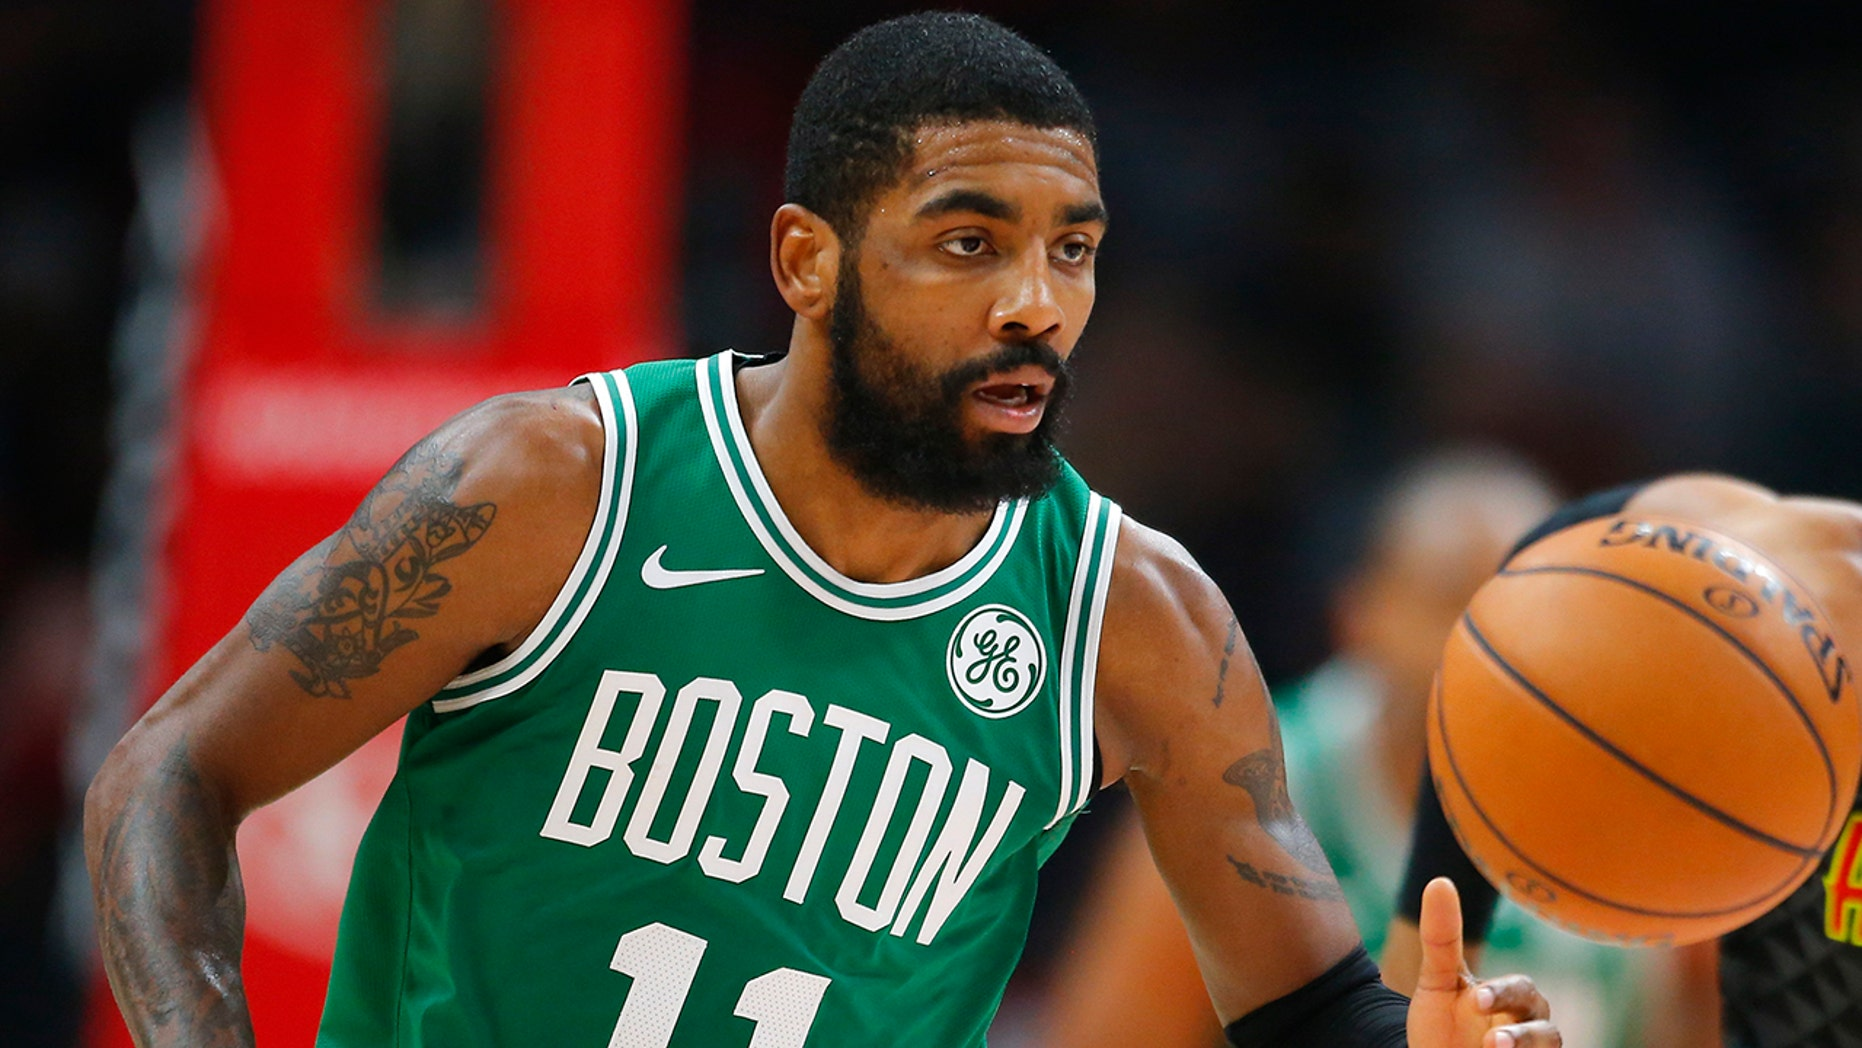 Boston Celtics guard Kyrie Irving is set to star in a film about an Oklahoma City hotel.